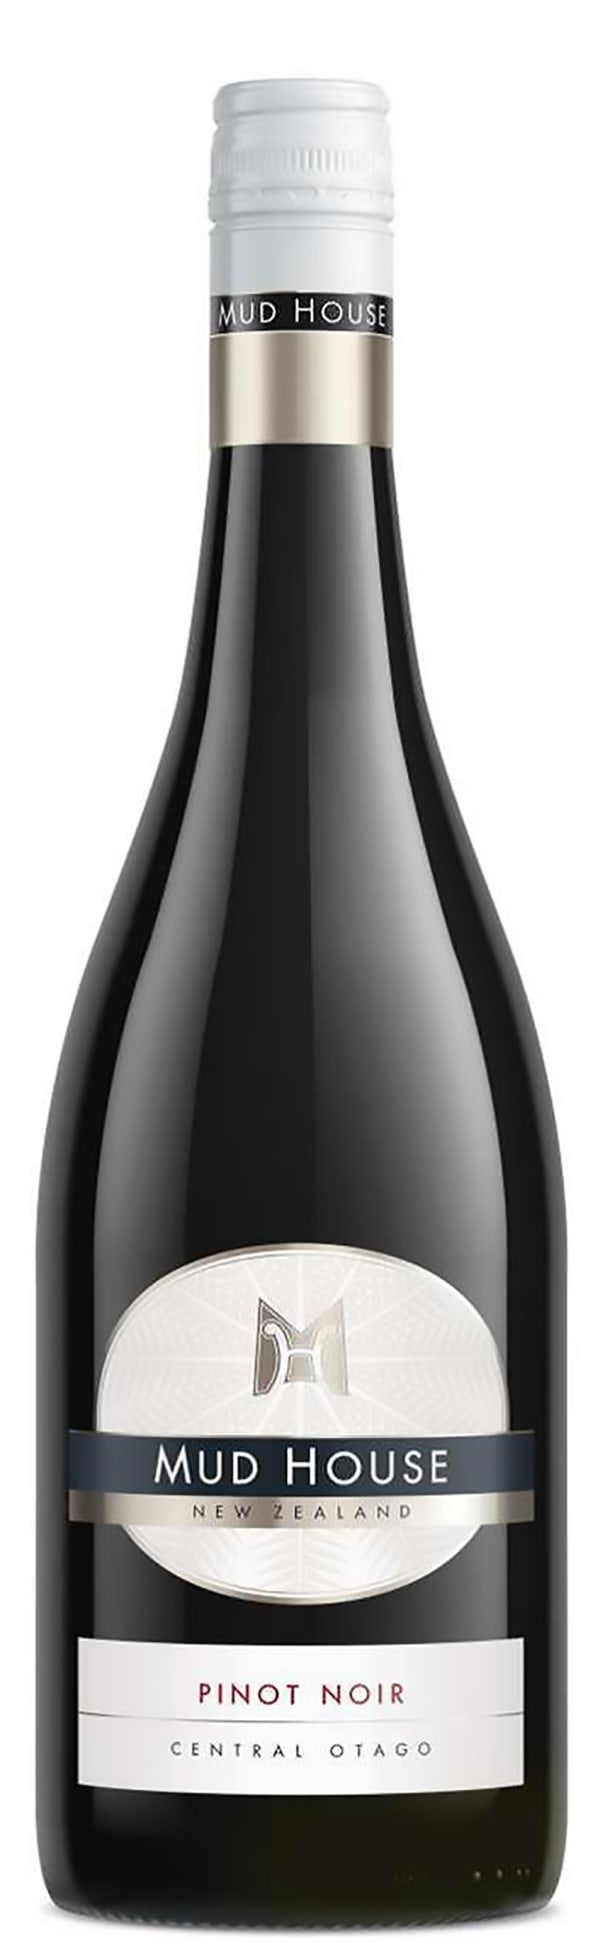 Mud House Central Otago Pinot Noir 2016